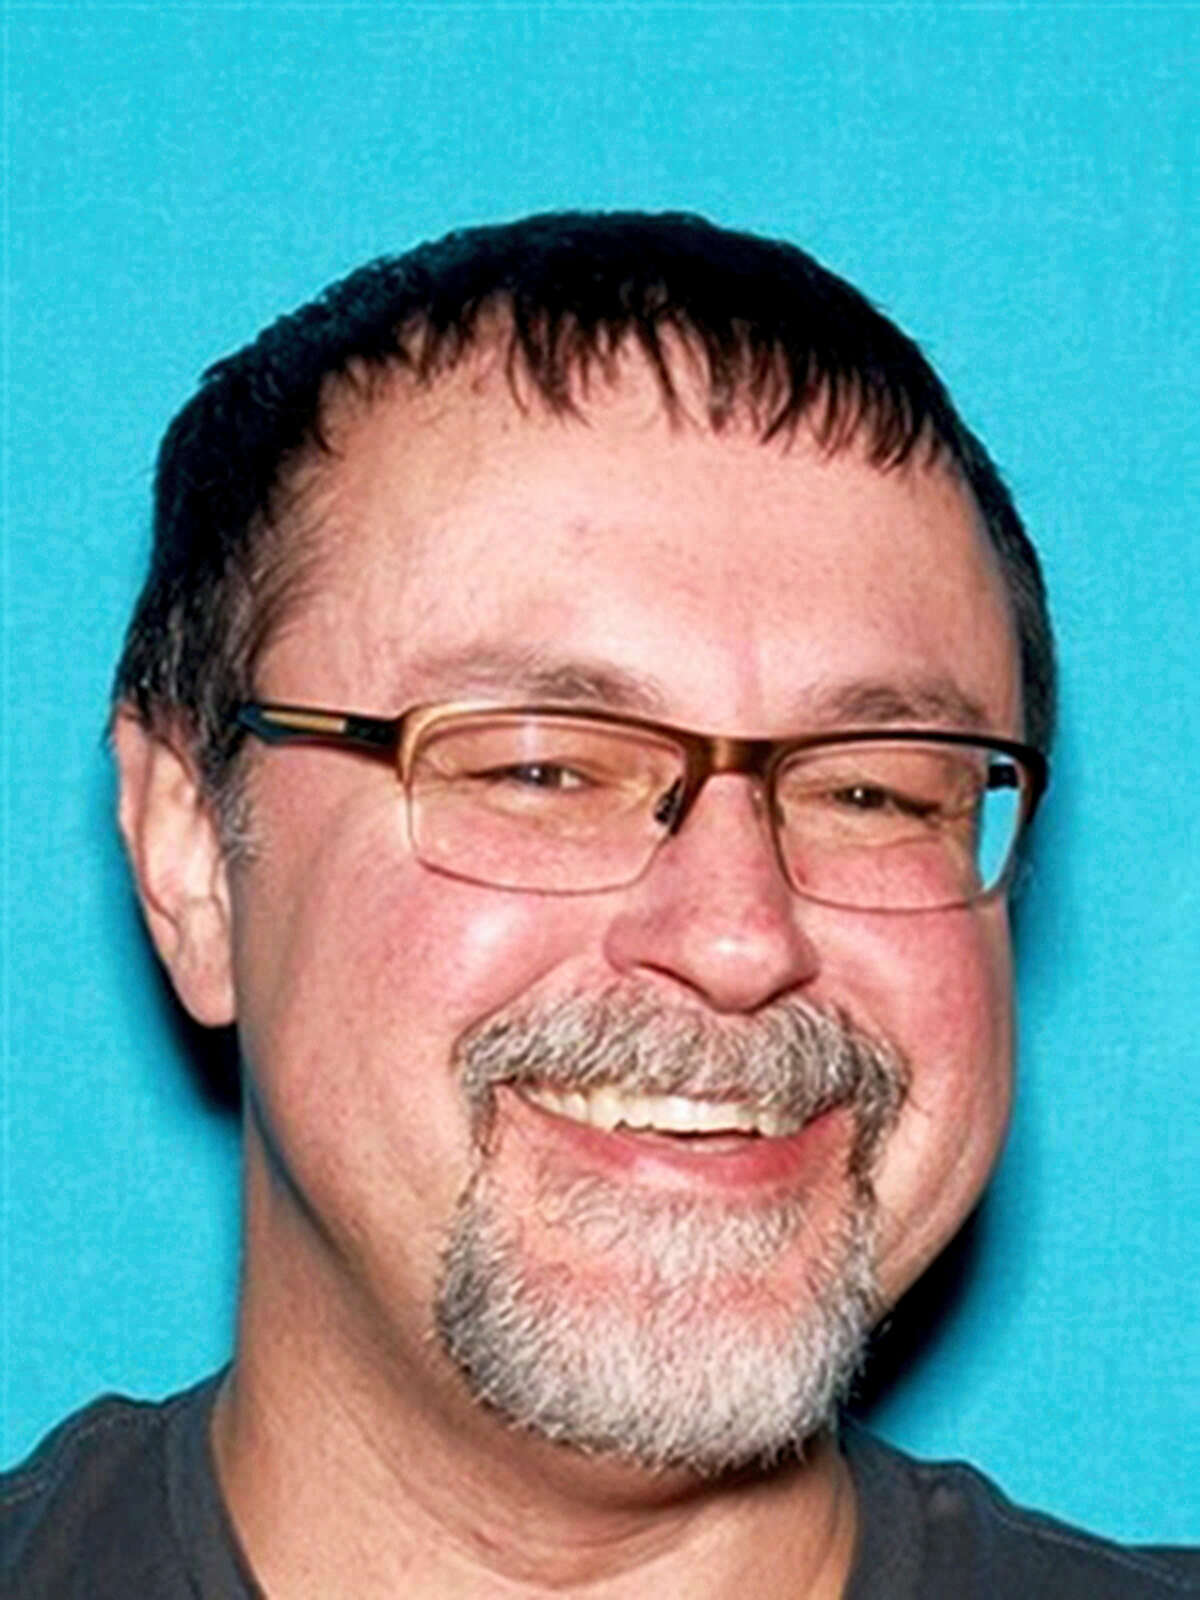 """Tennessee Bureau of Investigations via AP This undated photo released by the Tennessee Bureau of Investigations shows Tad Cummins in Tennessee. Tennessee authorities say there's been a confirmed sighting of Elizabeth Thomas, a 15-year-old girl who disappeared more than two weeks ago with Cummins, her 50-year-old teacher. The Tennessee Bureau of Investigation said it remains """"extremely concerned"""" about the well-being of Elizabeth Thomas, who was last seen Monday, March 13, 2017, in Columbia, Tenn. Cummins was placed on the TBI's Top 10 Most Wanted List."""